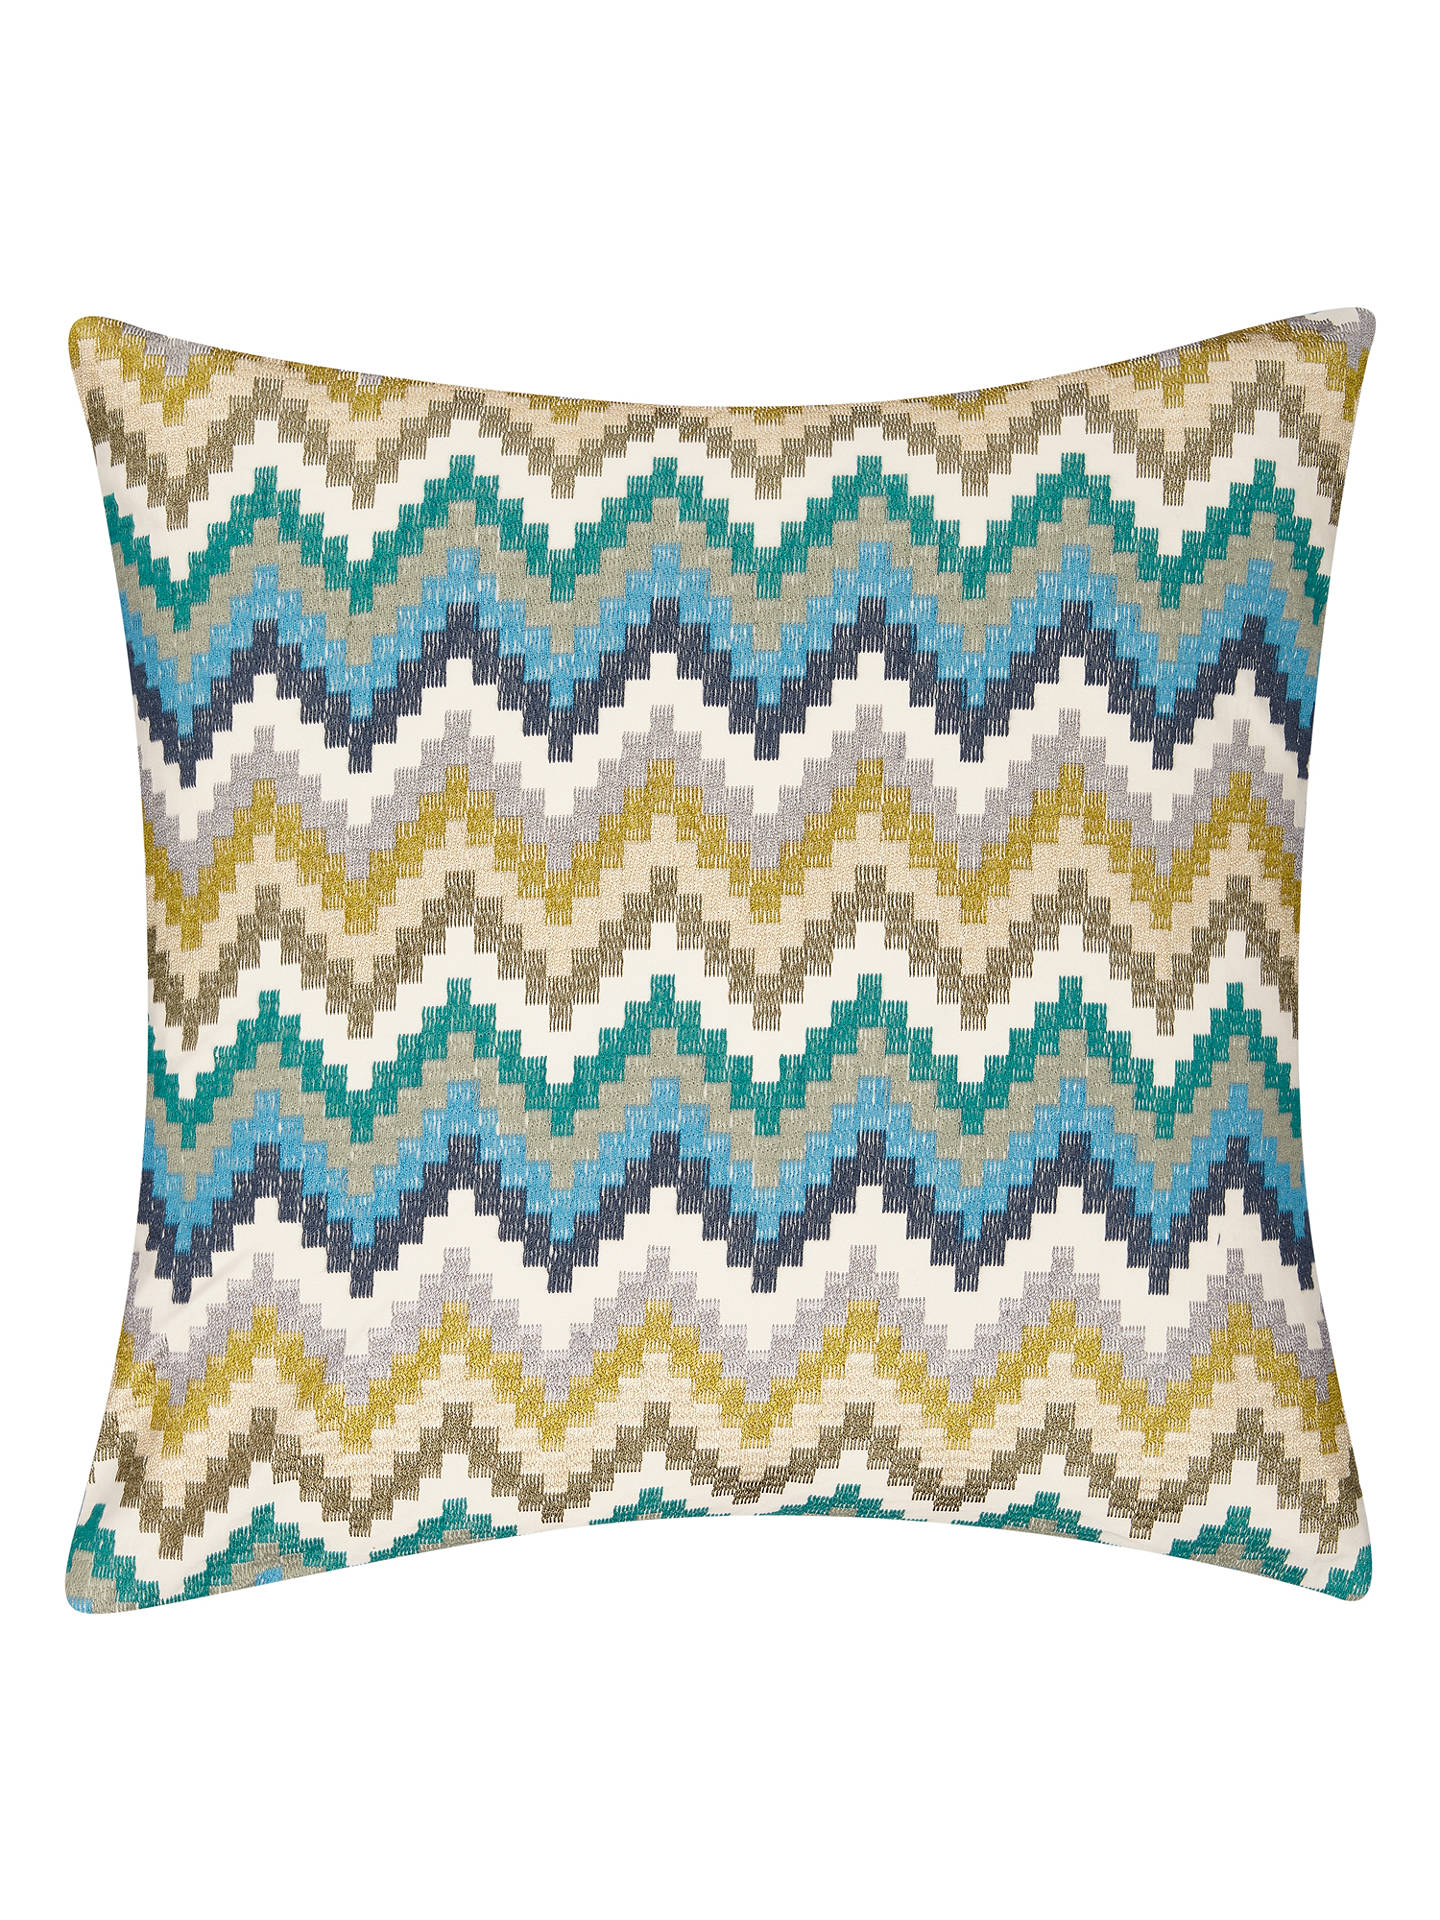 BuyHarlequin Minouri Cushion, Emerald / Ochre / Slate Online at johnlewis.com